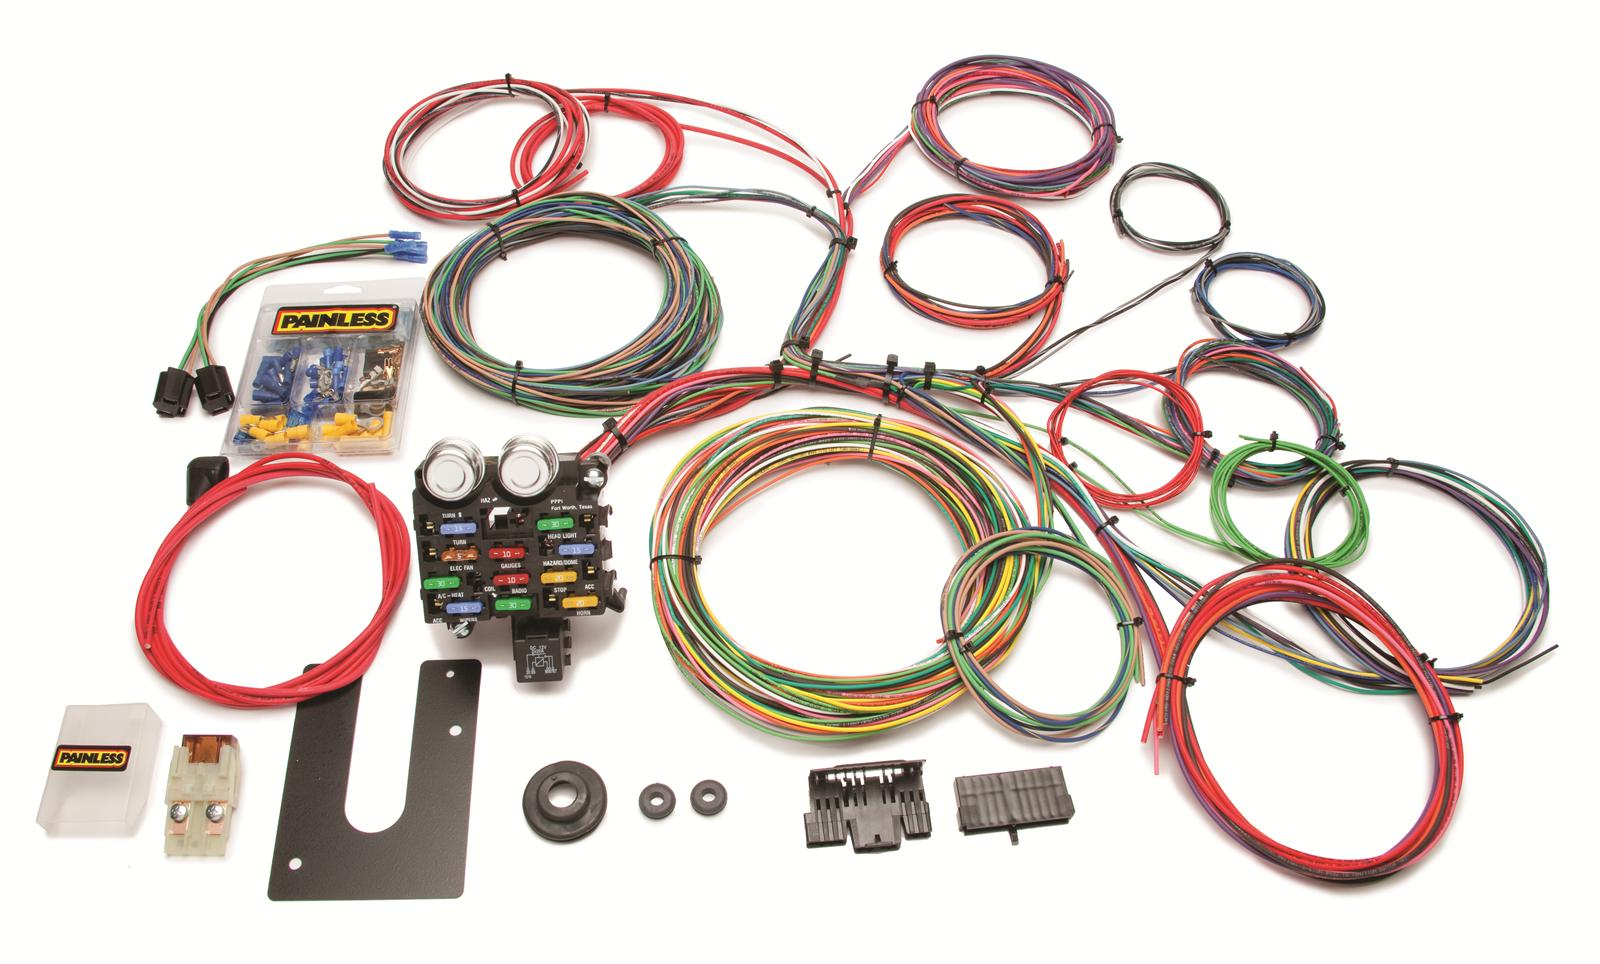 Painless Performance 21 Circuit Universal Harnesses 10102 Free Porsche 1973 1914 Fuse Box Diagram Shipping On Orders Over 49 At Summit Racing